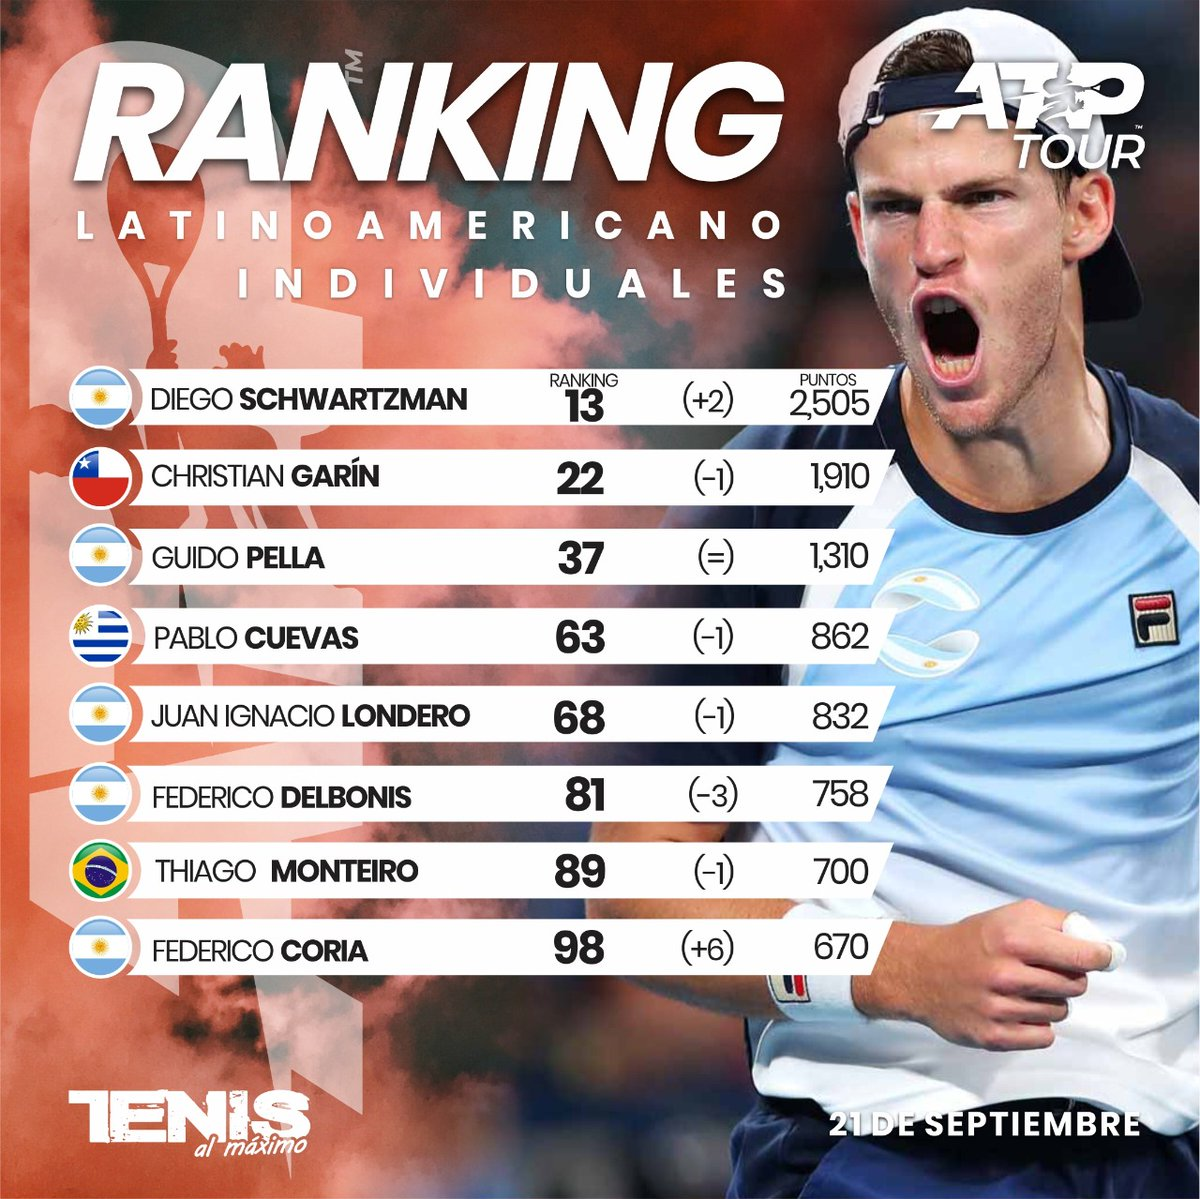 #Ranking | Clasificación profesional ATP LATINOAMERICANOS al lunes 21 septiembre 2020....El 🇦🇷Federico Coria hace su ingreso al top 100 #TenisalMáximo #TenisxTAMTV #SomosTAM #TAMTV #Tenis #Tennis #Sports #TennisLove #Tennisfan #TennisPlayers #Tennisvideo #Comunidad #ATP #Top100 https://t.co/YE2MevfSGC